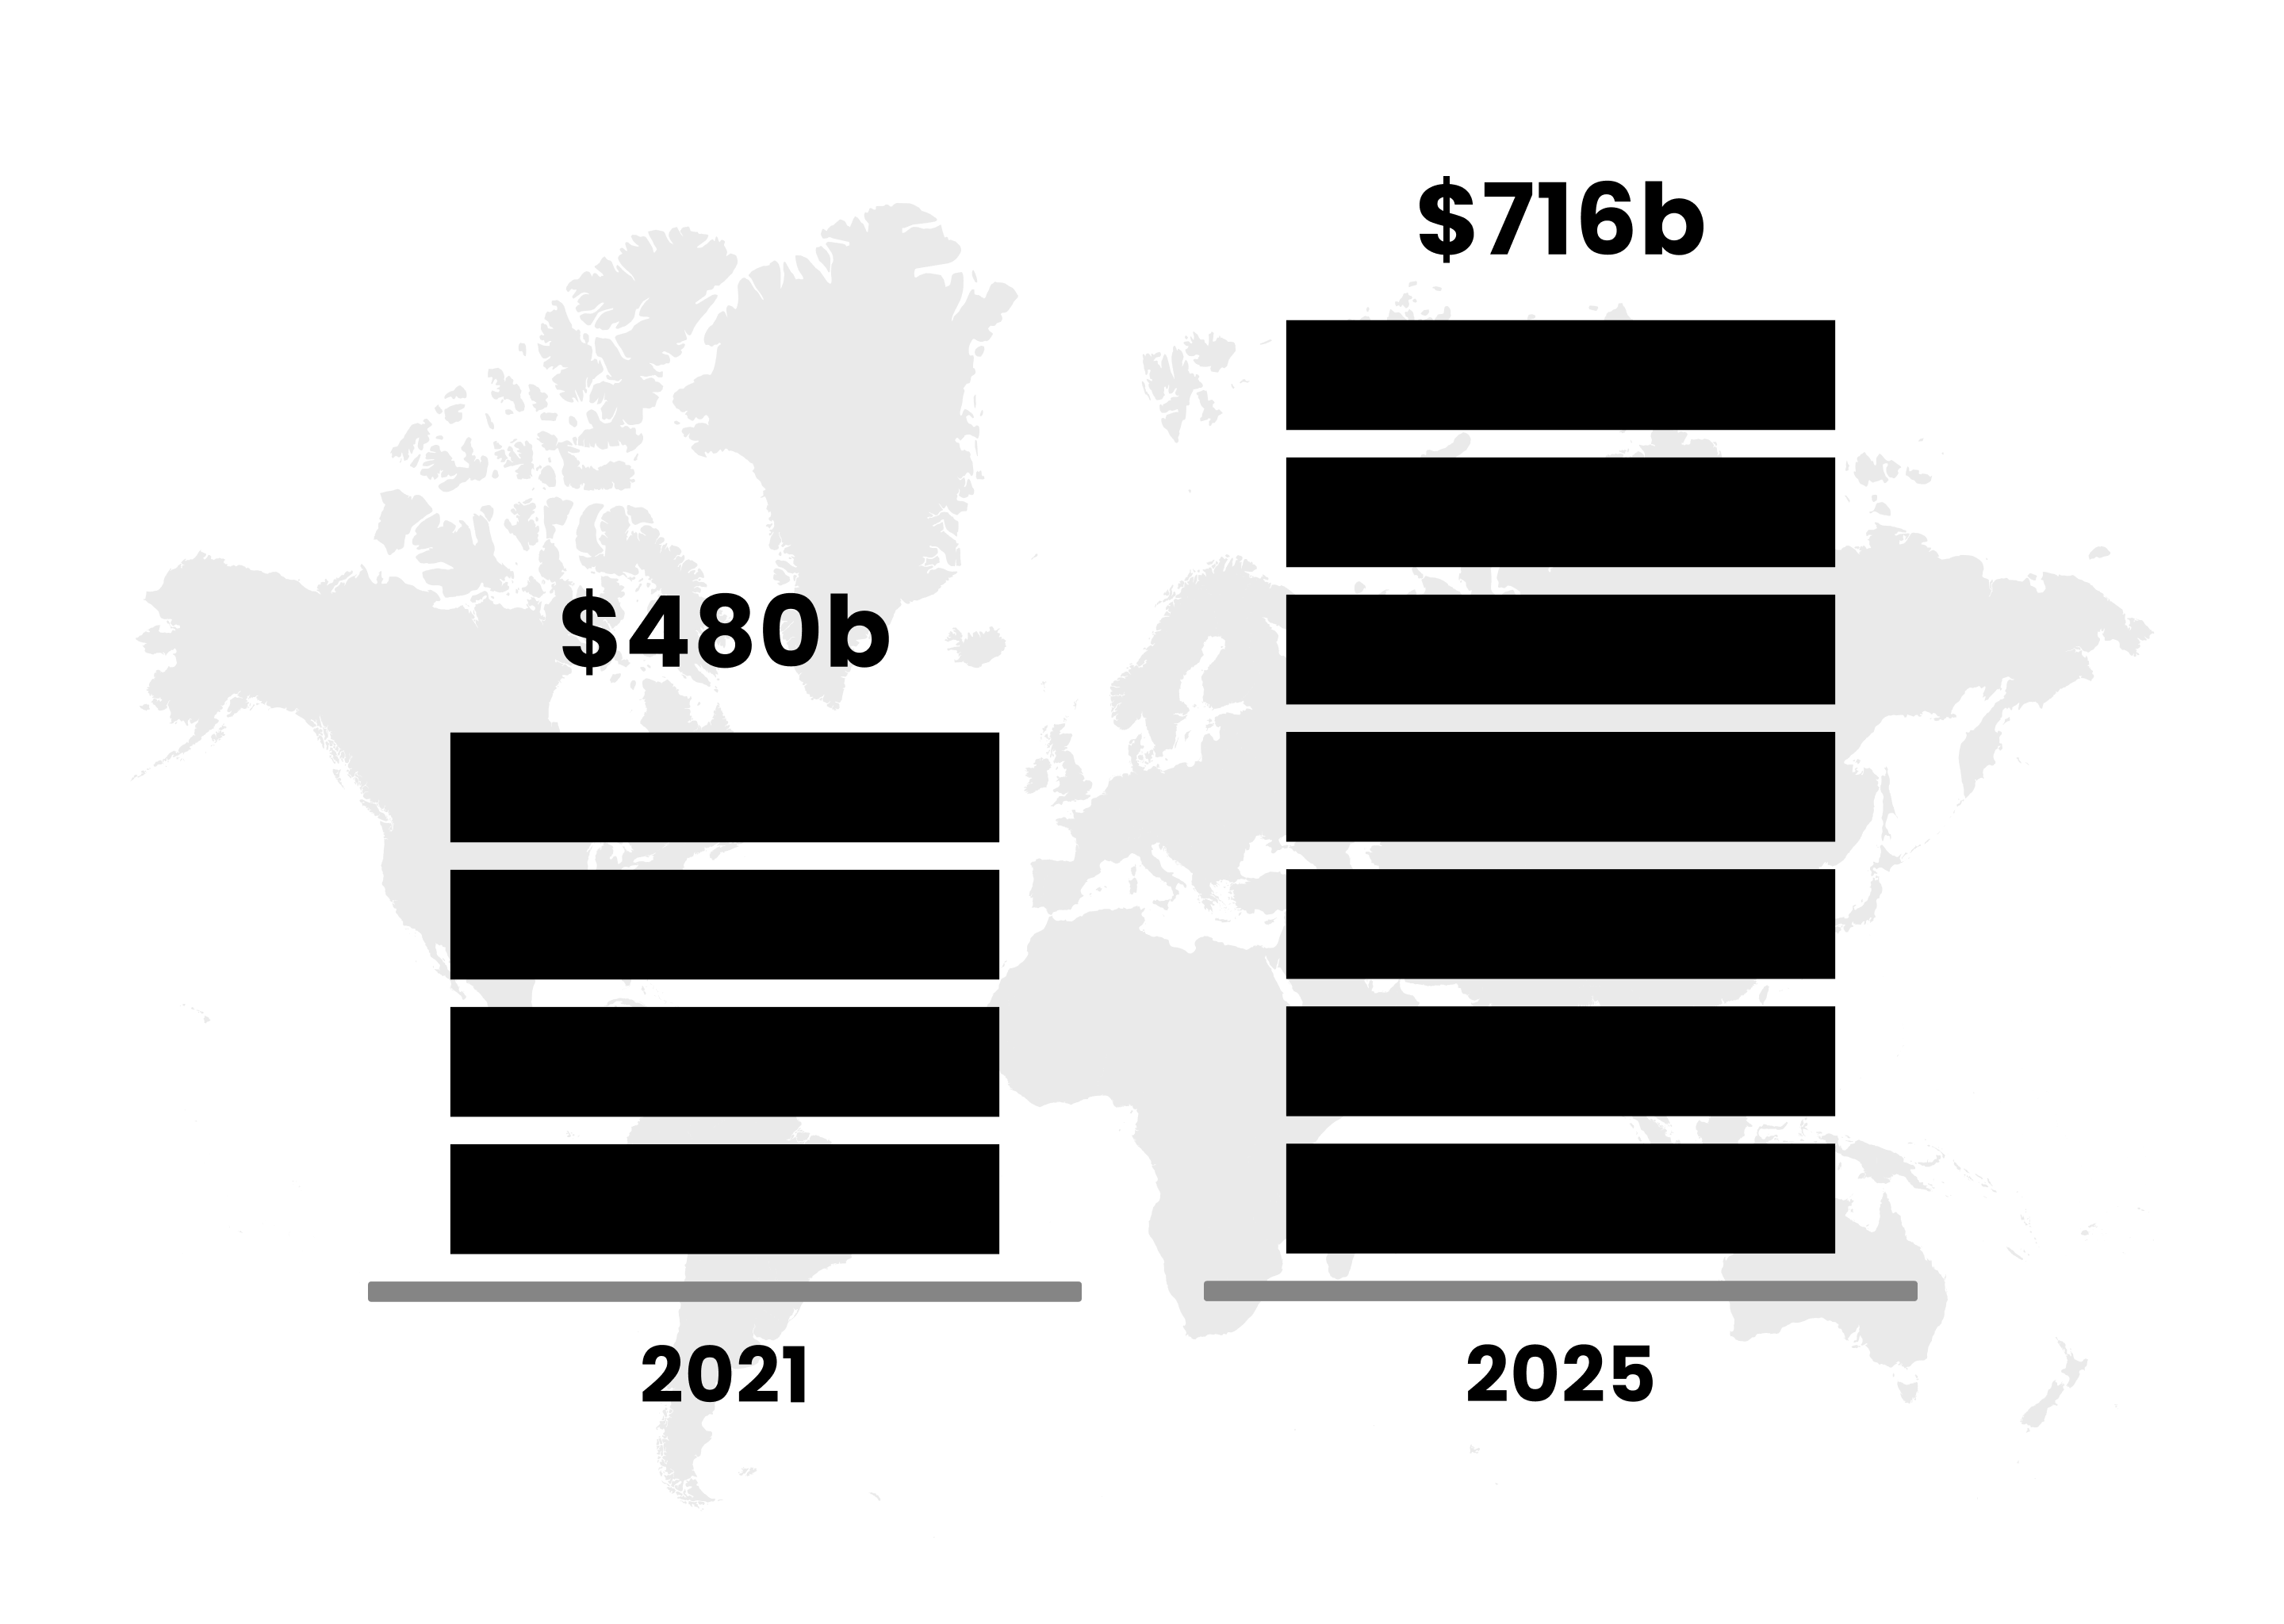 Chart showing beauty industry growth from 2021 at $480 billion to 2025 at $716 billion